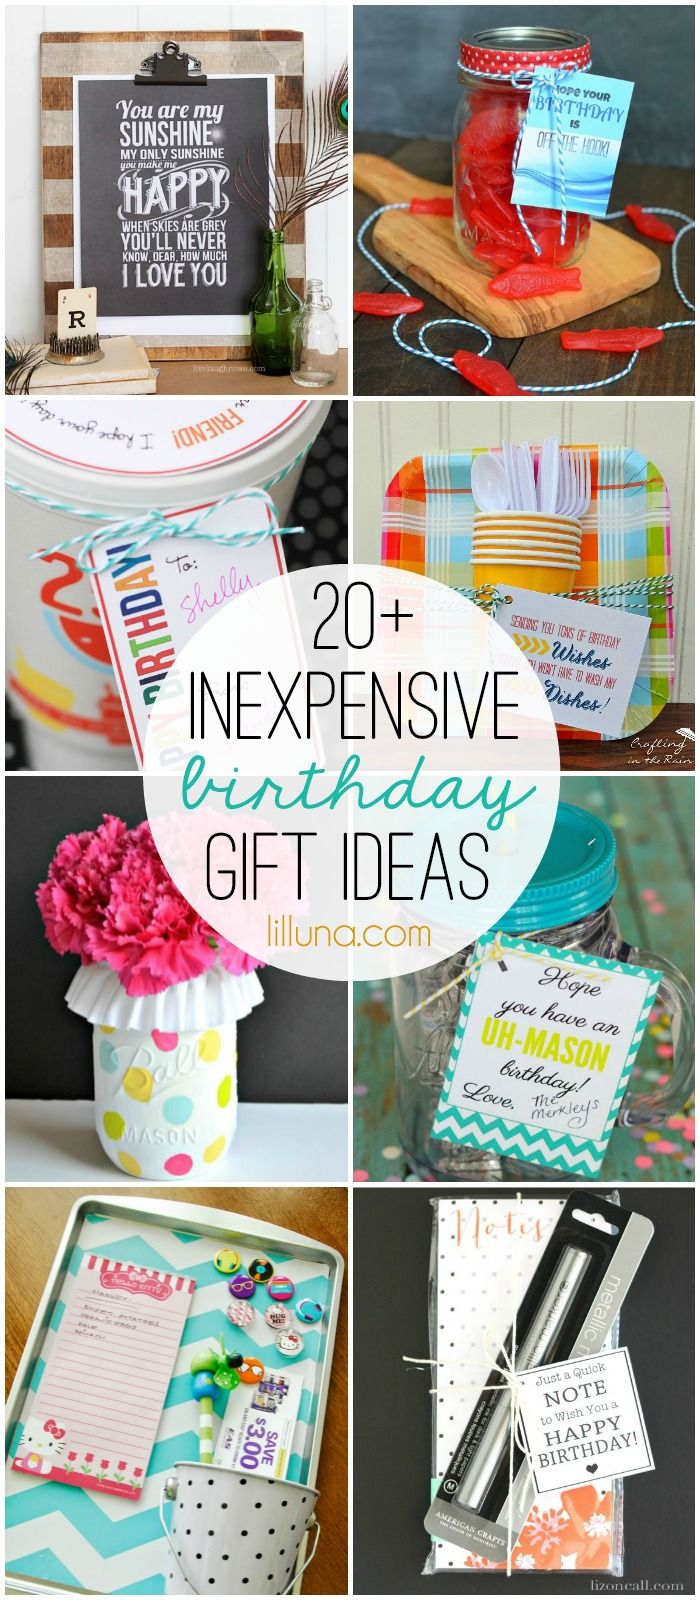 787 best Birthday//gift ideas images on Pinterest | Gifts, DIY and ...